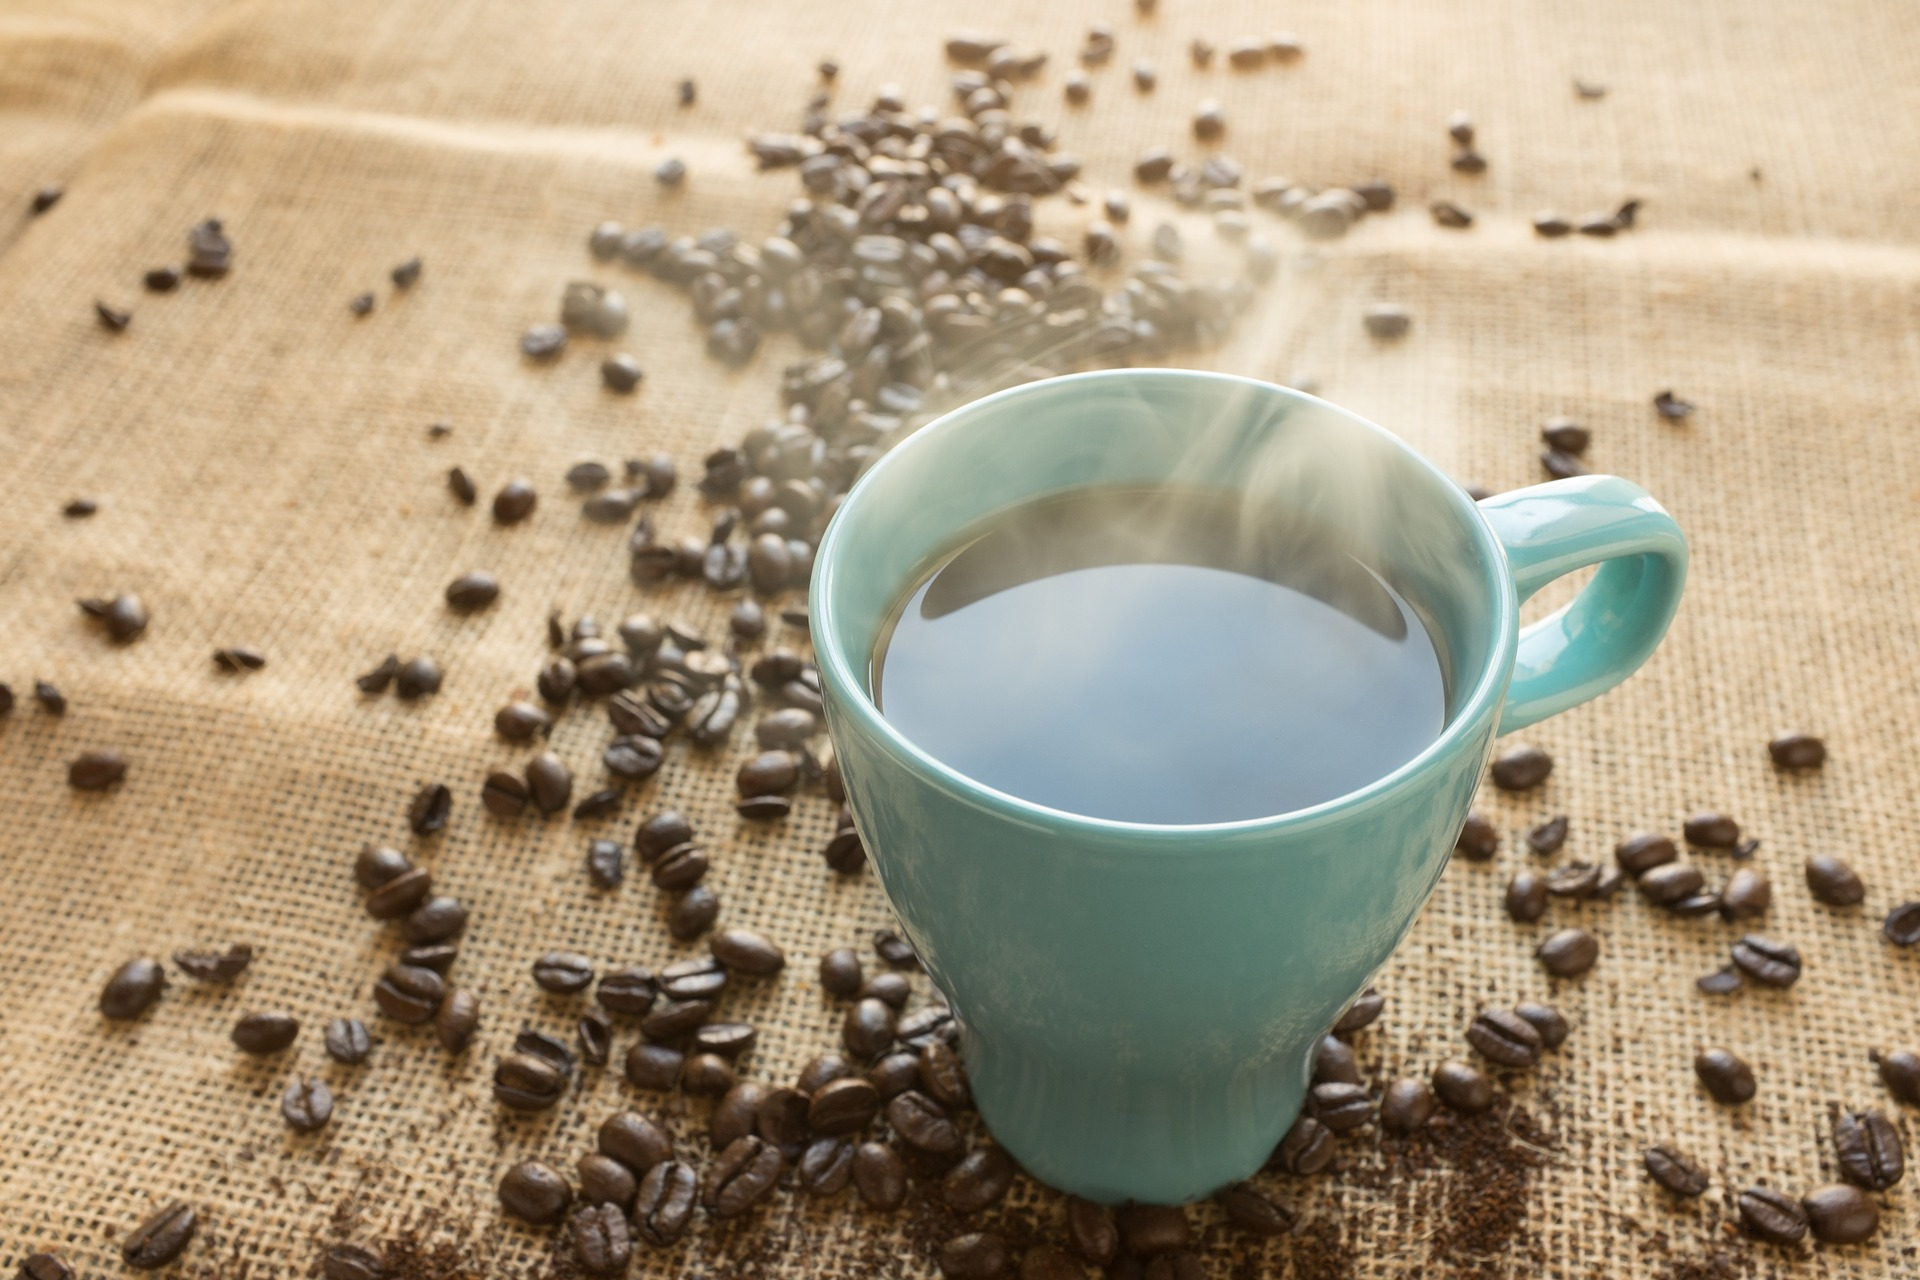 A cup of coffee in a blue cup on a sheet of burlap scattered with coffee beans. The science over whether this cup or those beans increase your cancer risk is still shaky.